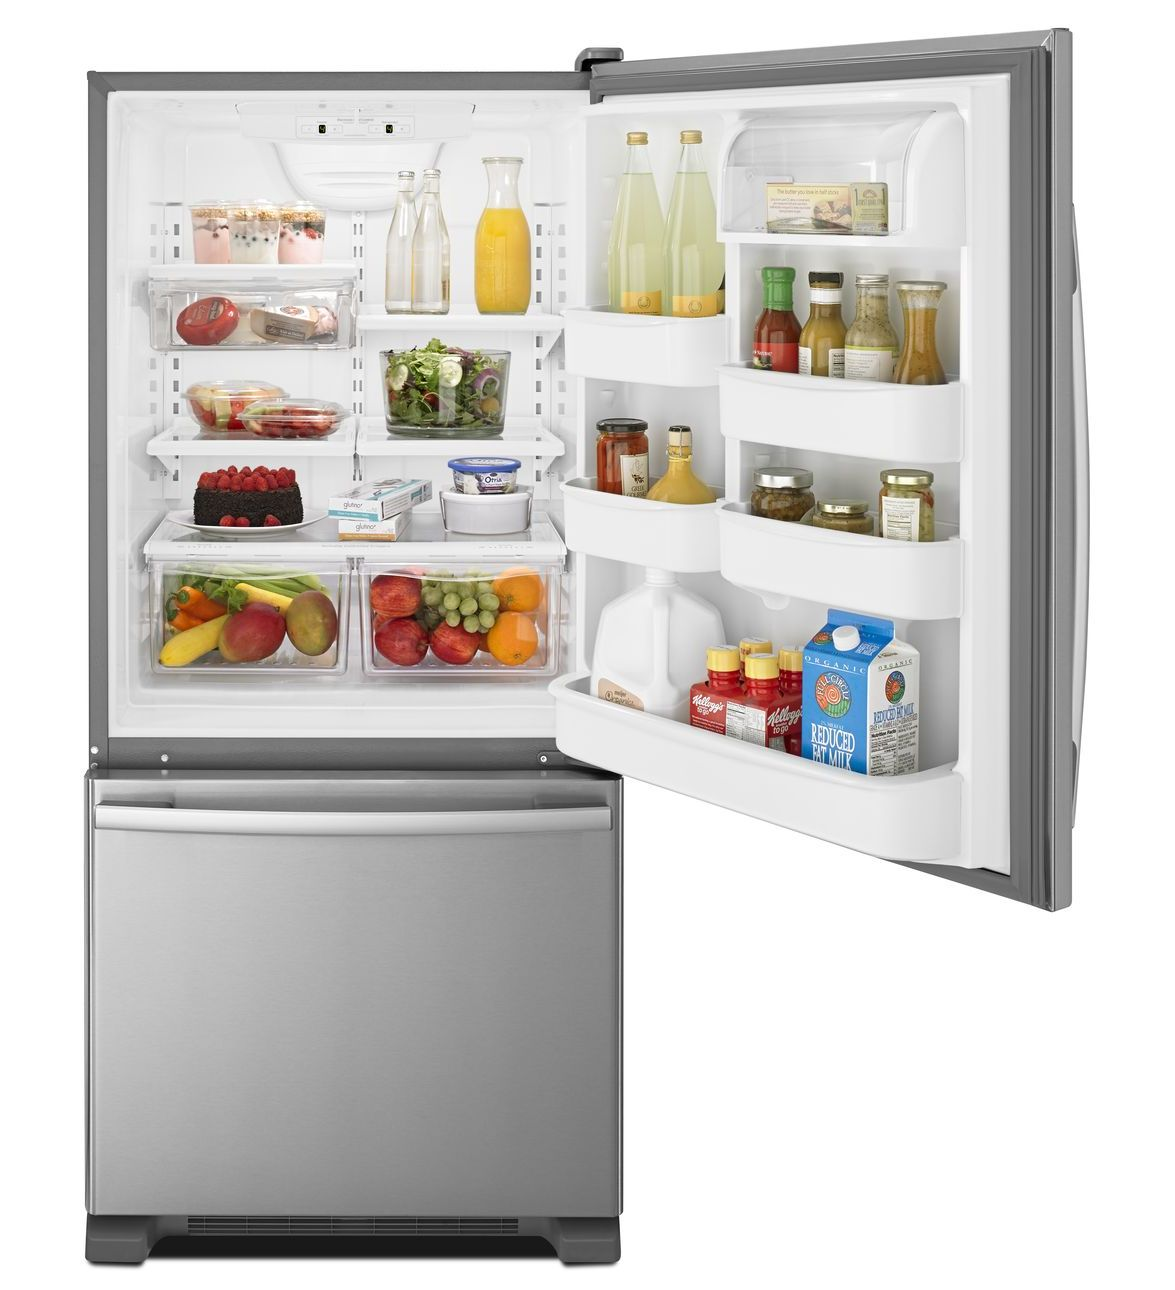 Fridges Canada Amana 29 Inch Wide Amana Bottom Freezer Refrigerator With Easyfreezer Pull Out Drawer 18 Cu Ft Capacity